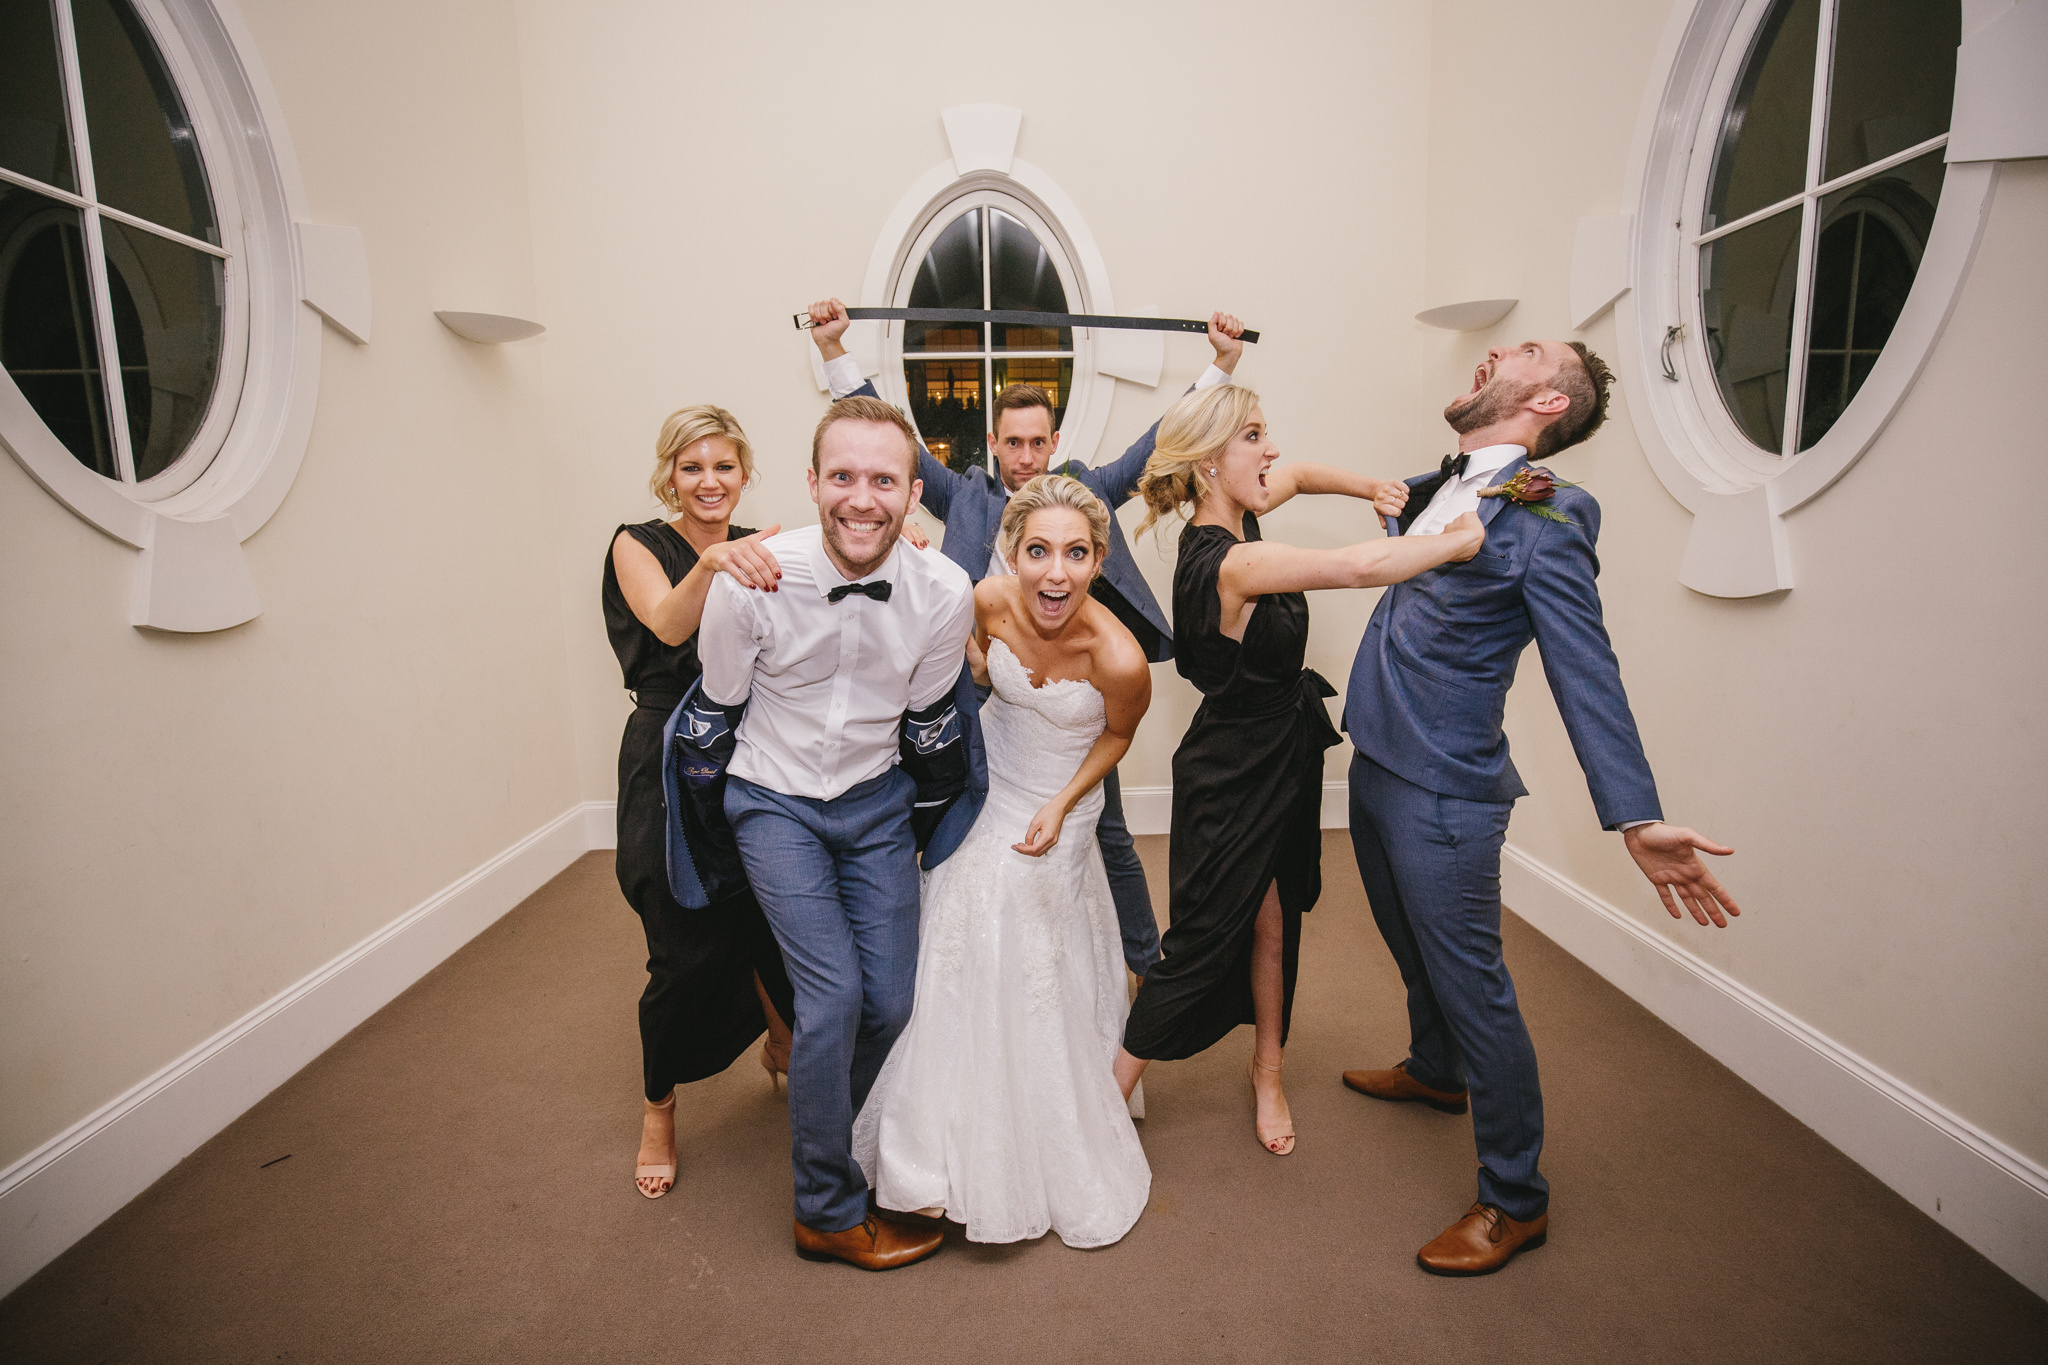 Wedding, Photography, Jack Gilchrist, Sydney Wedding Photographer, Southern Highlands, Bride, Dress, Married